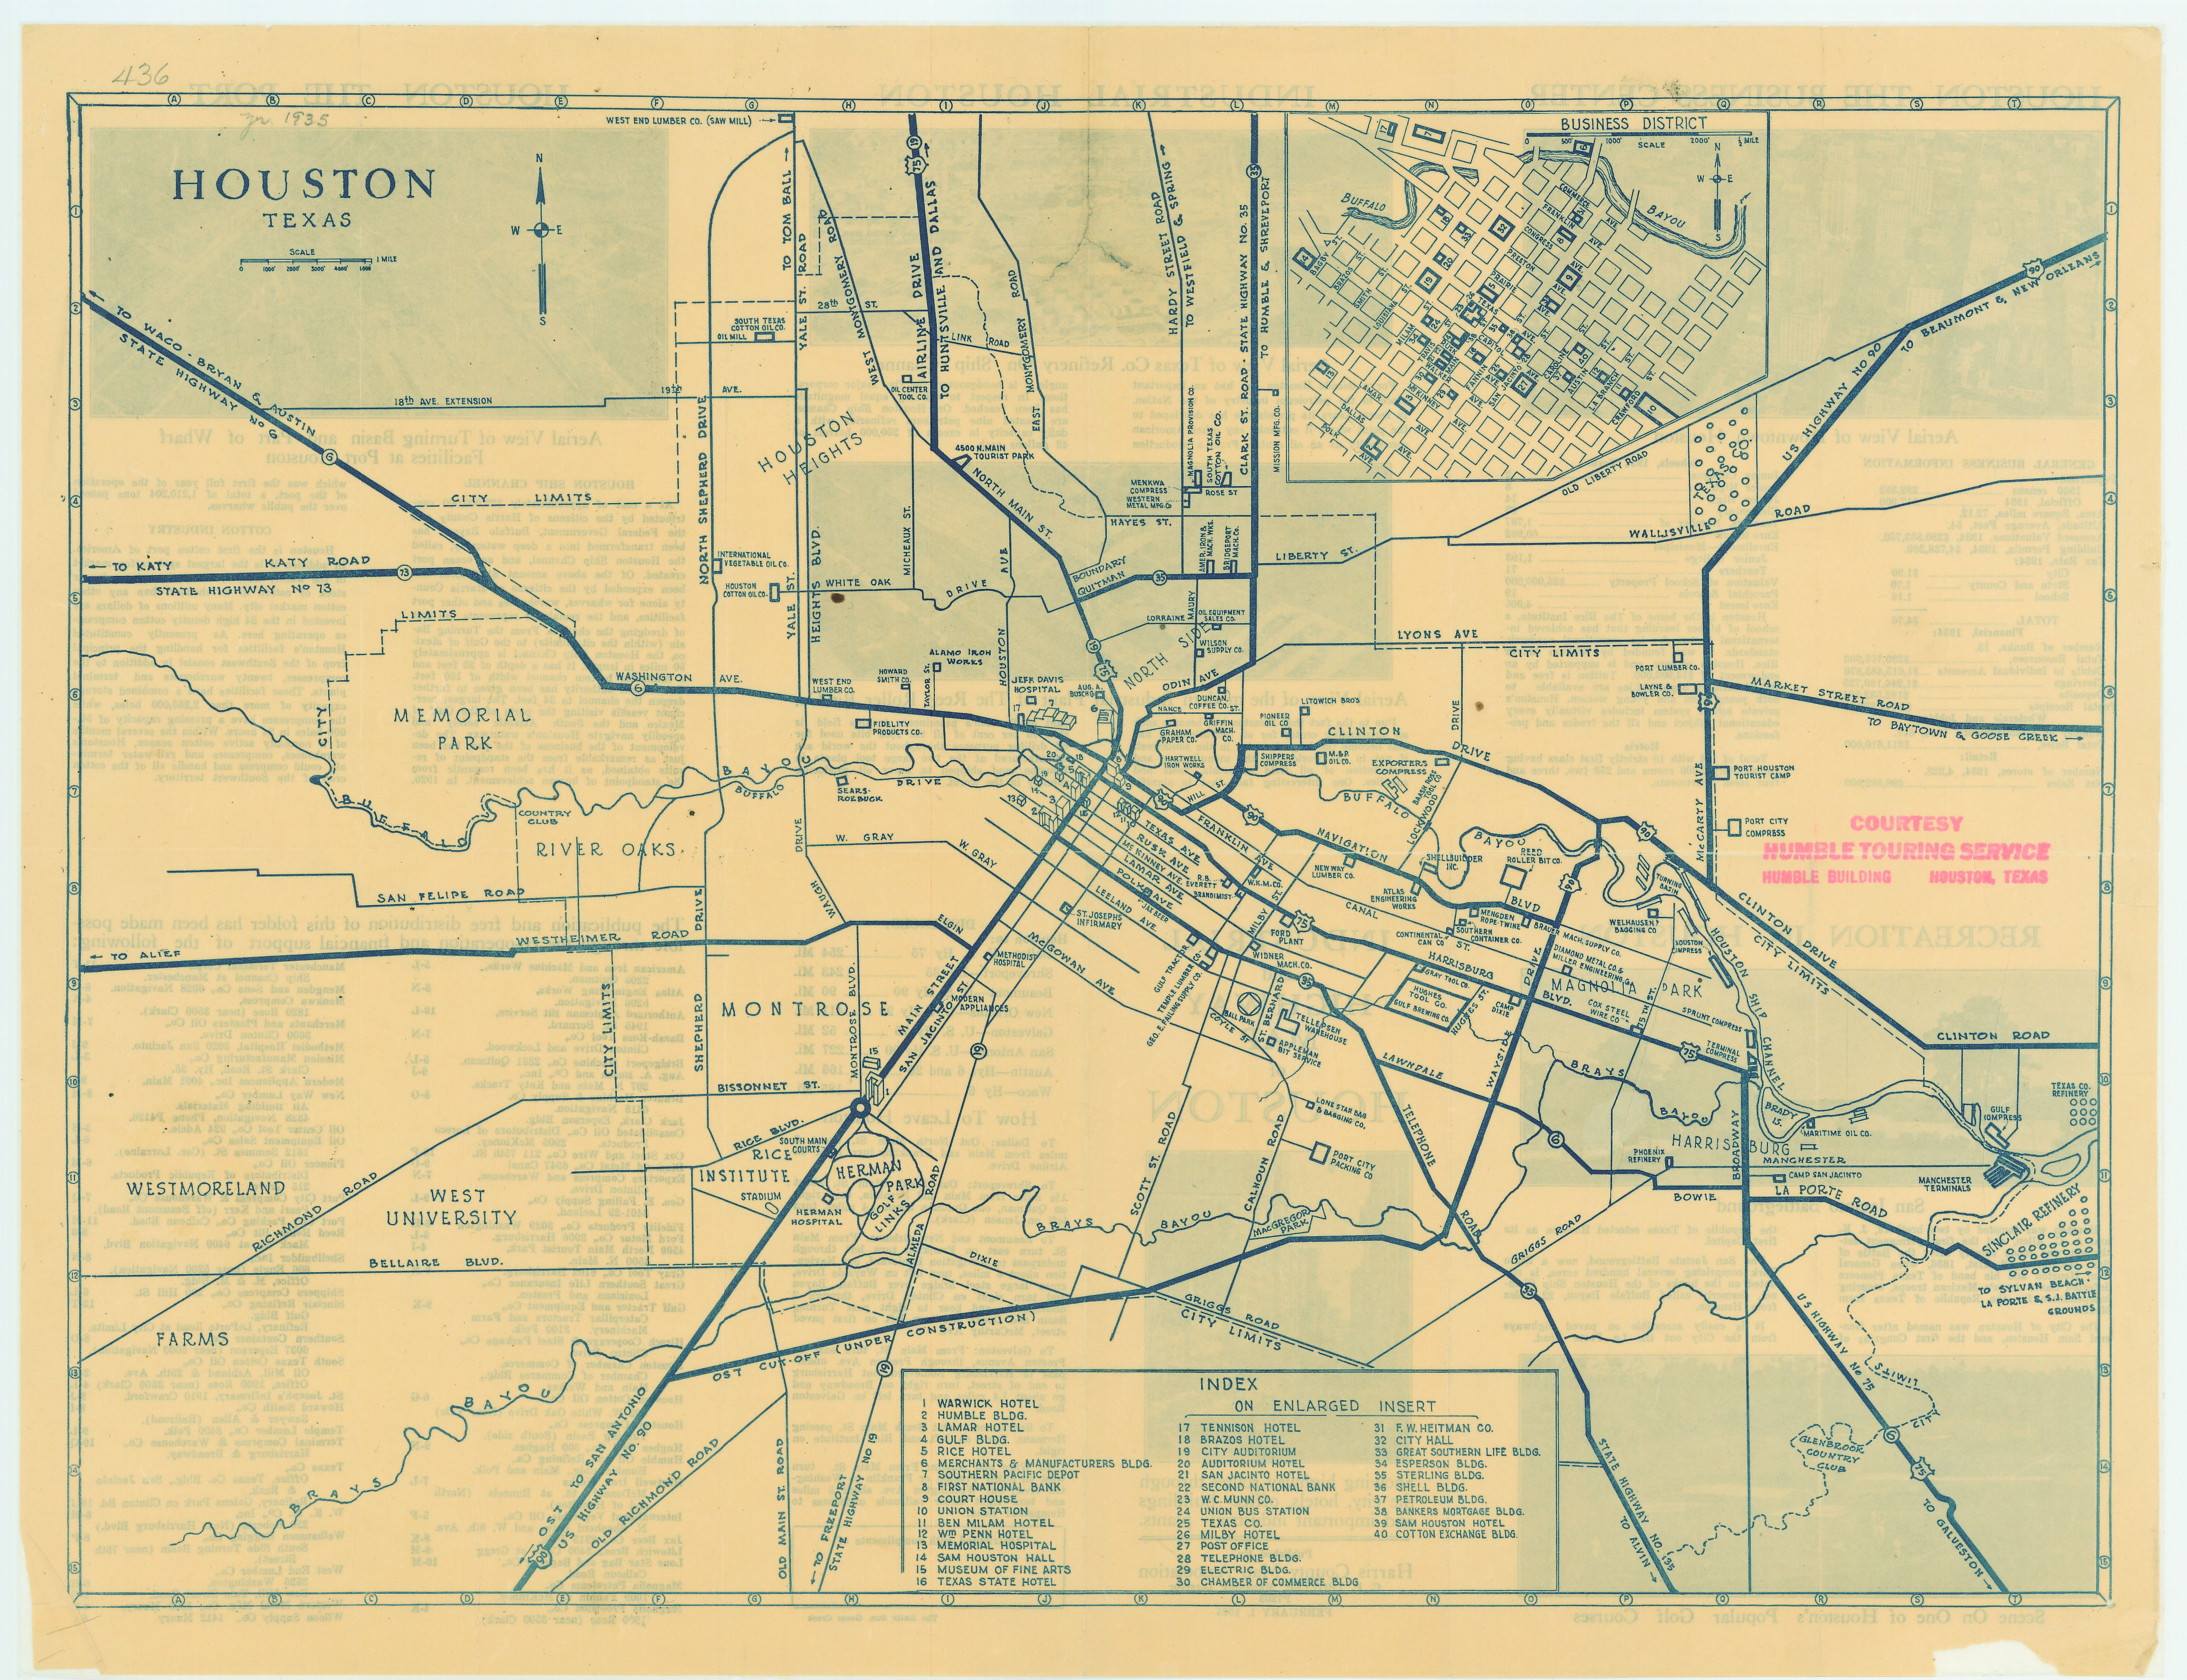 Buy Old Austin Texas Map Vintage Historical Map Antique: Antique Map Of Houston From 1935